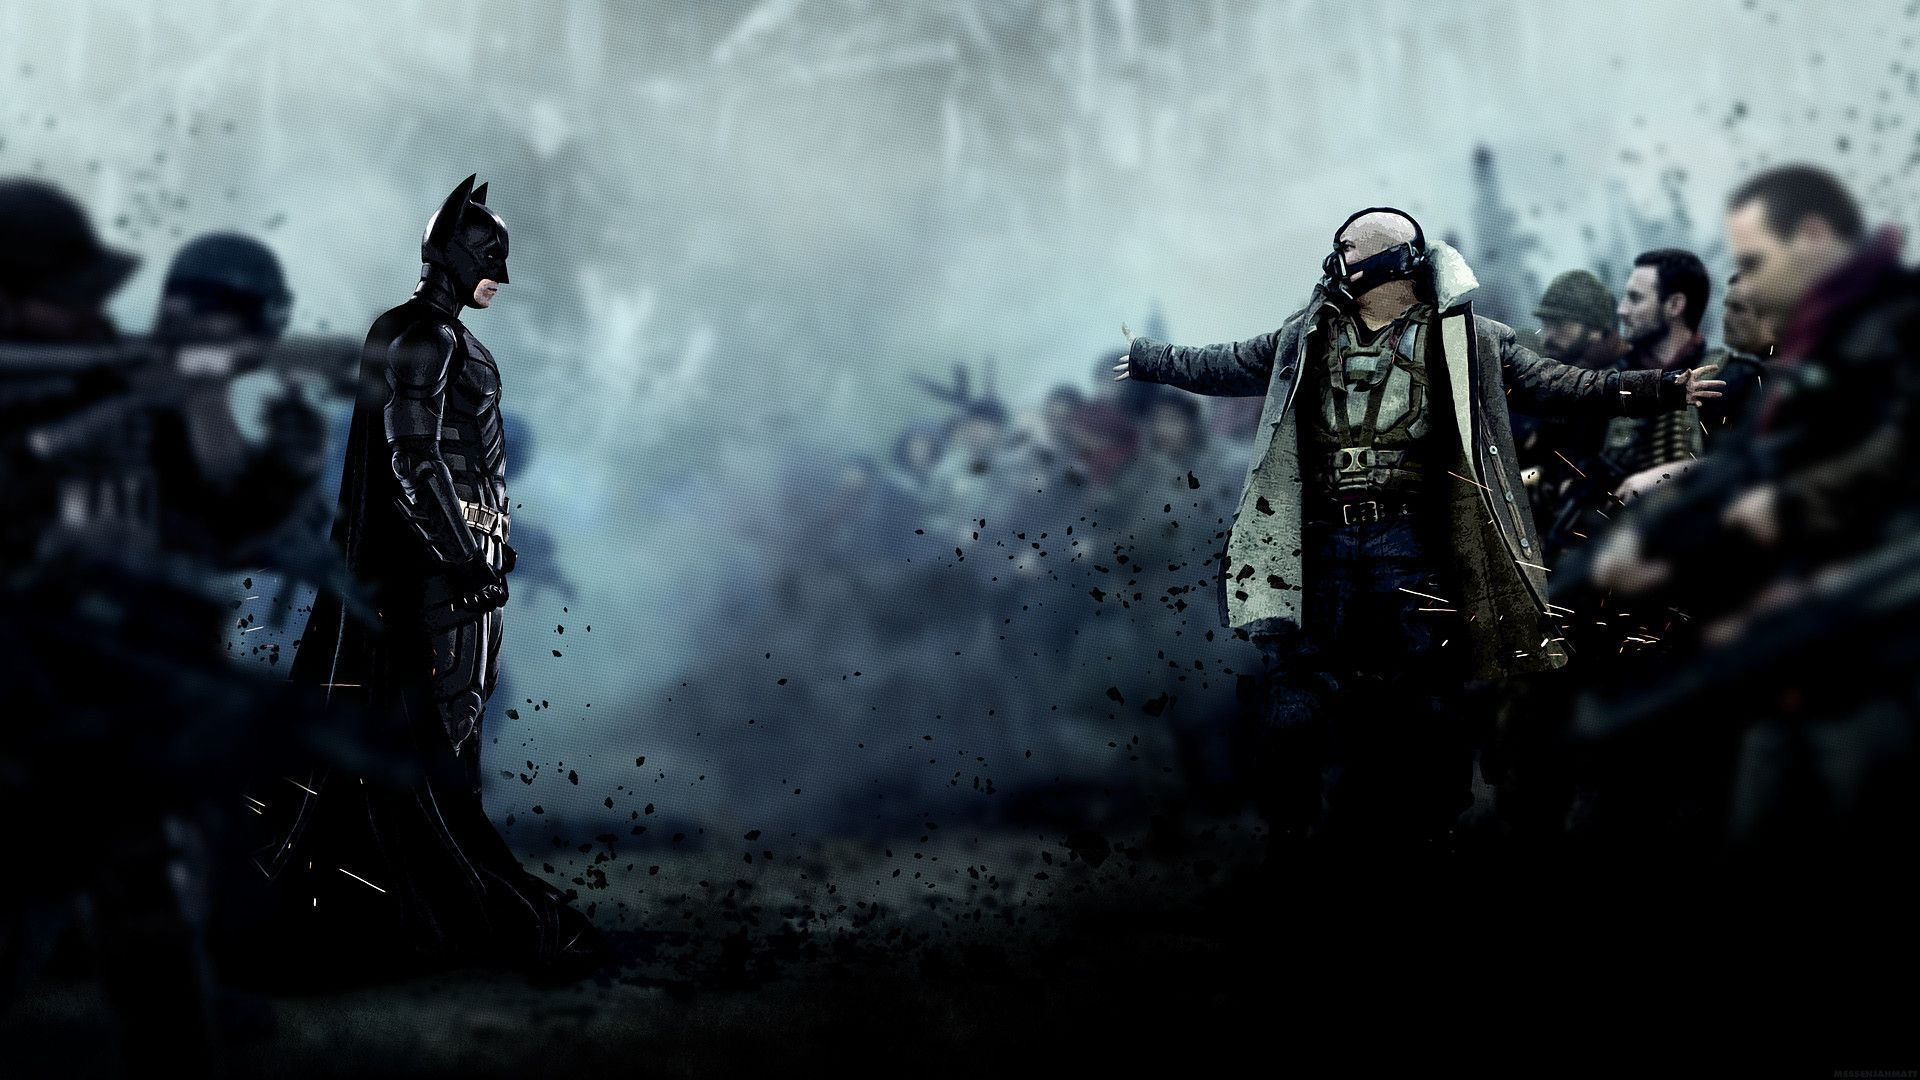 The Dark Knight Rises Wallpapers HD 1920x1080 - Wallpaper Cave